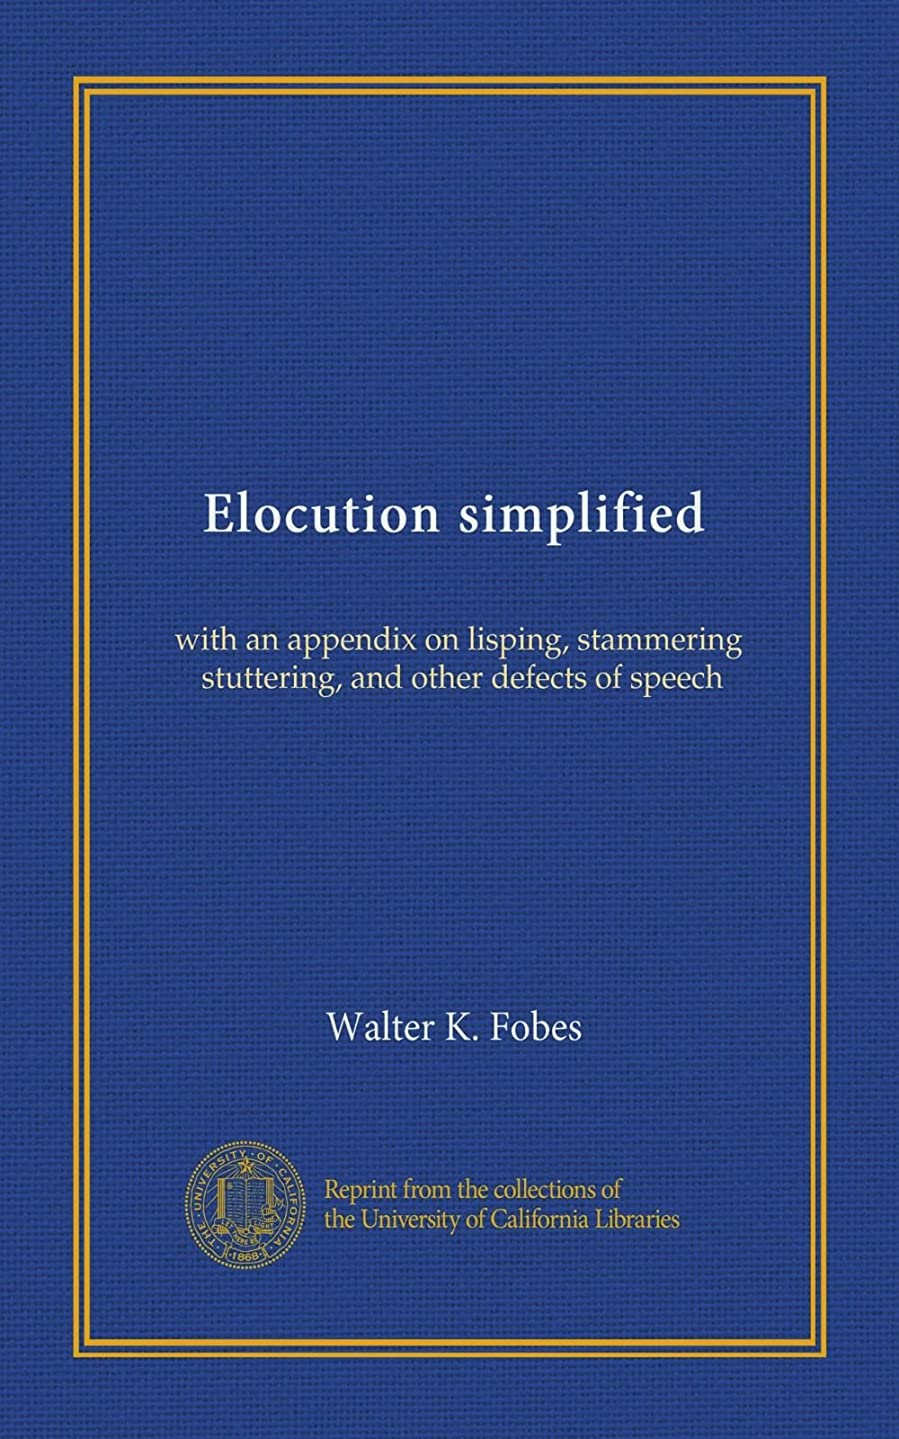 眉生き残ります拮抗Elocution simplified: with an appendix on lisping, stammering, stuttering, and other defects of speech